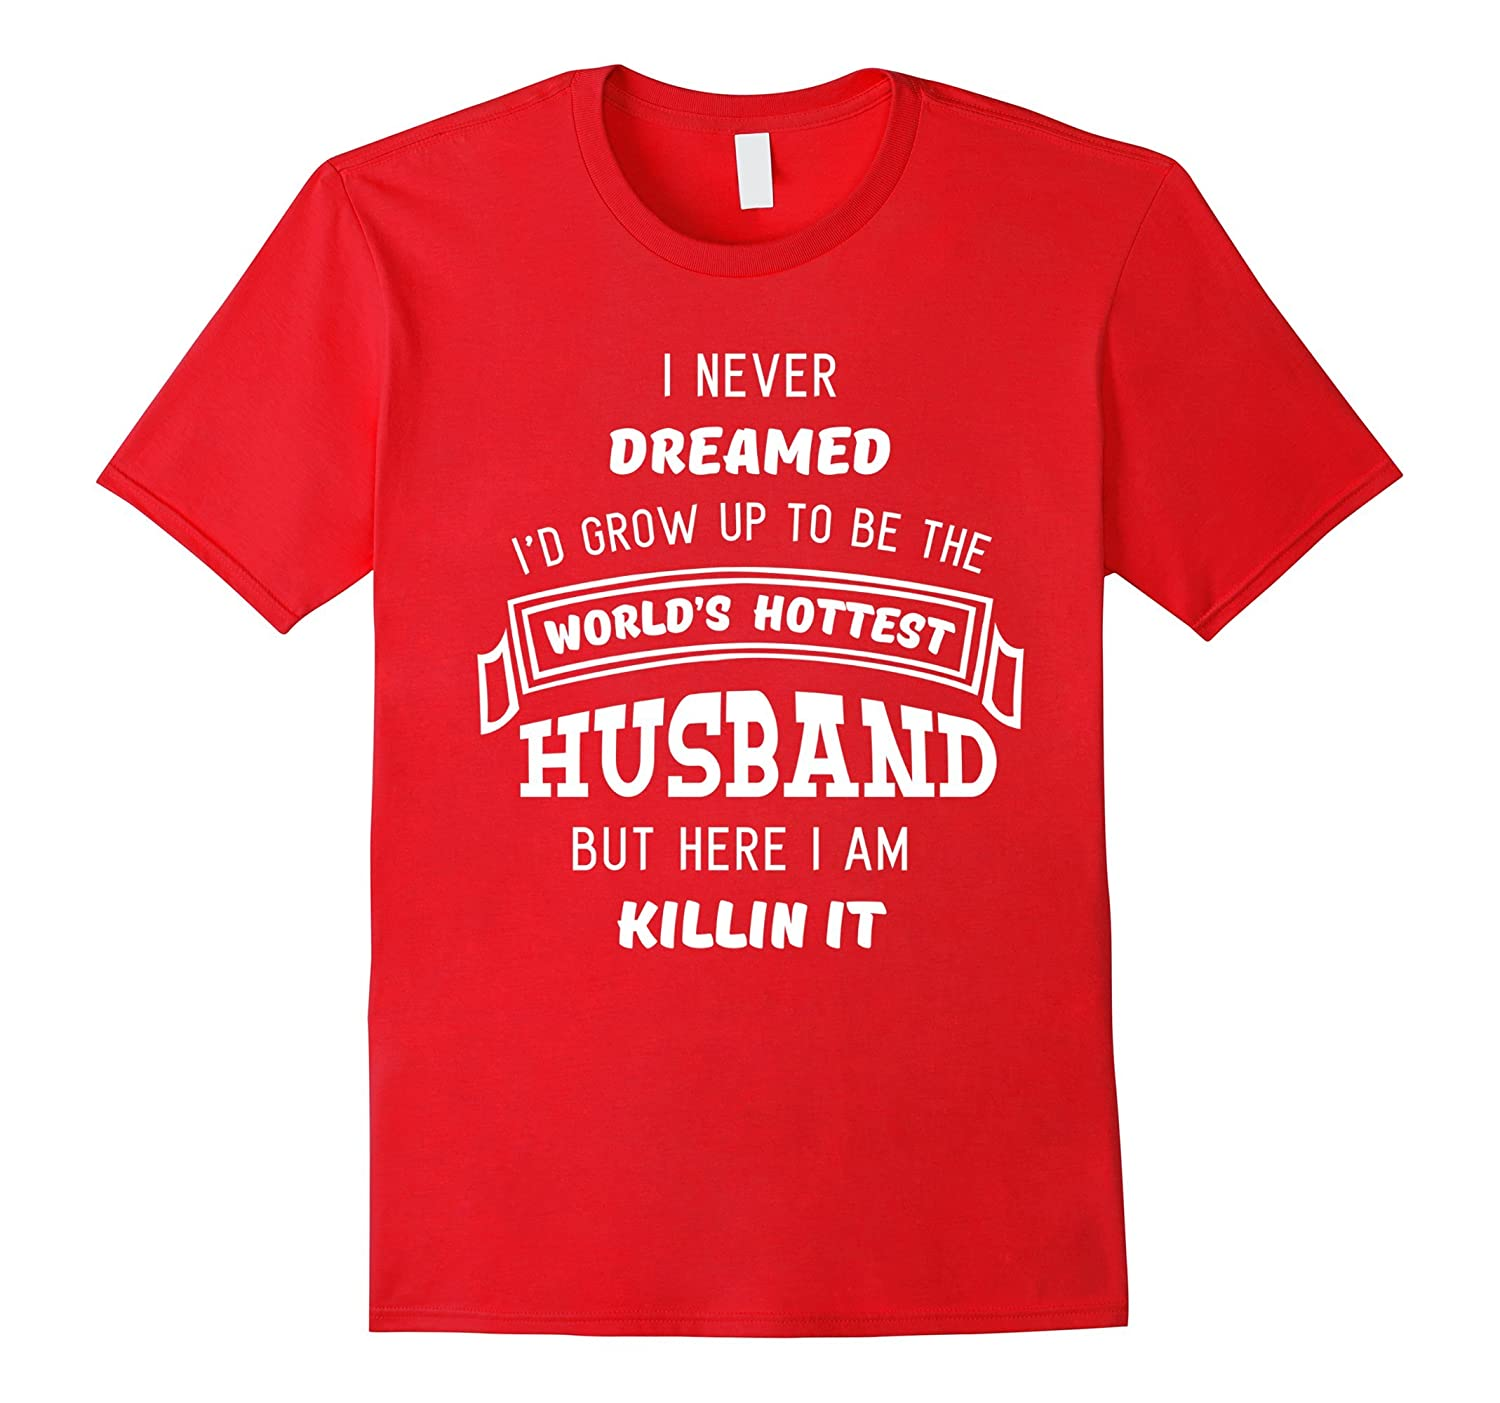 Hottest Husband Shirt Cute Funny Fathers Day Gift from Wife-PL